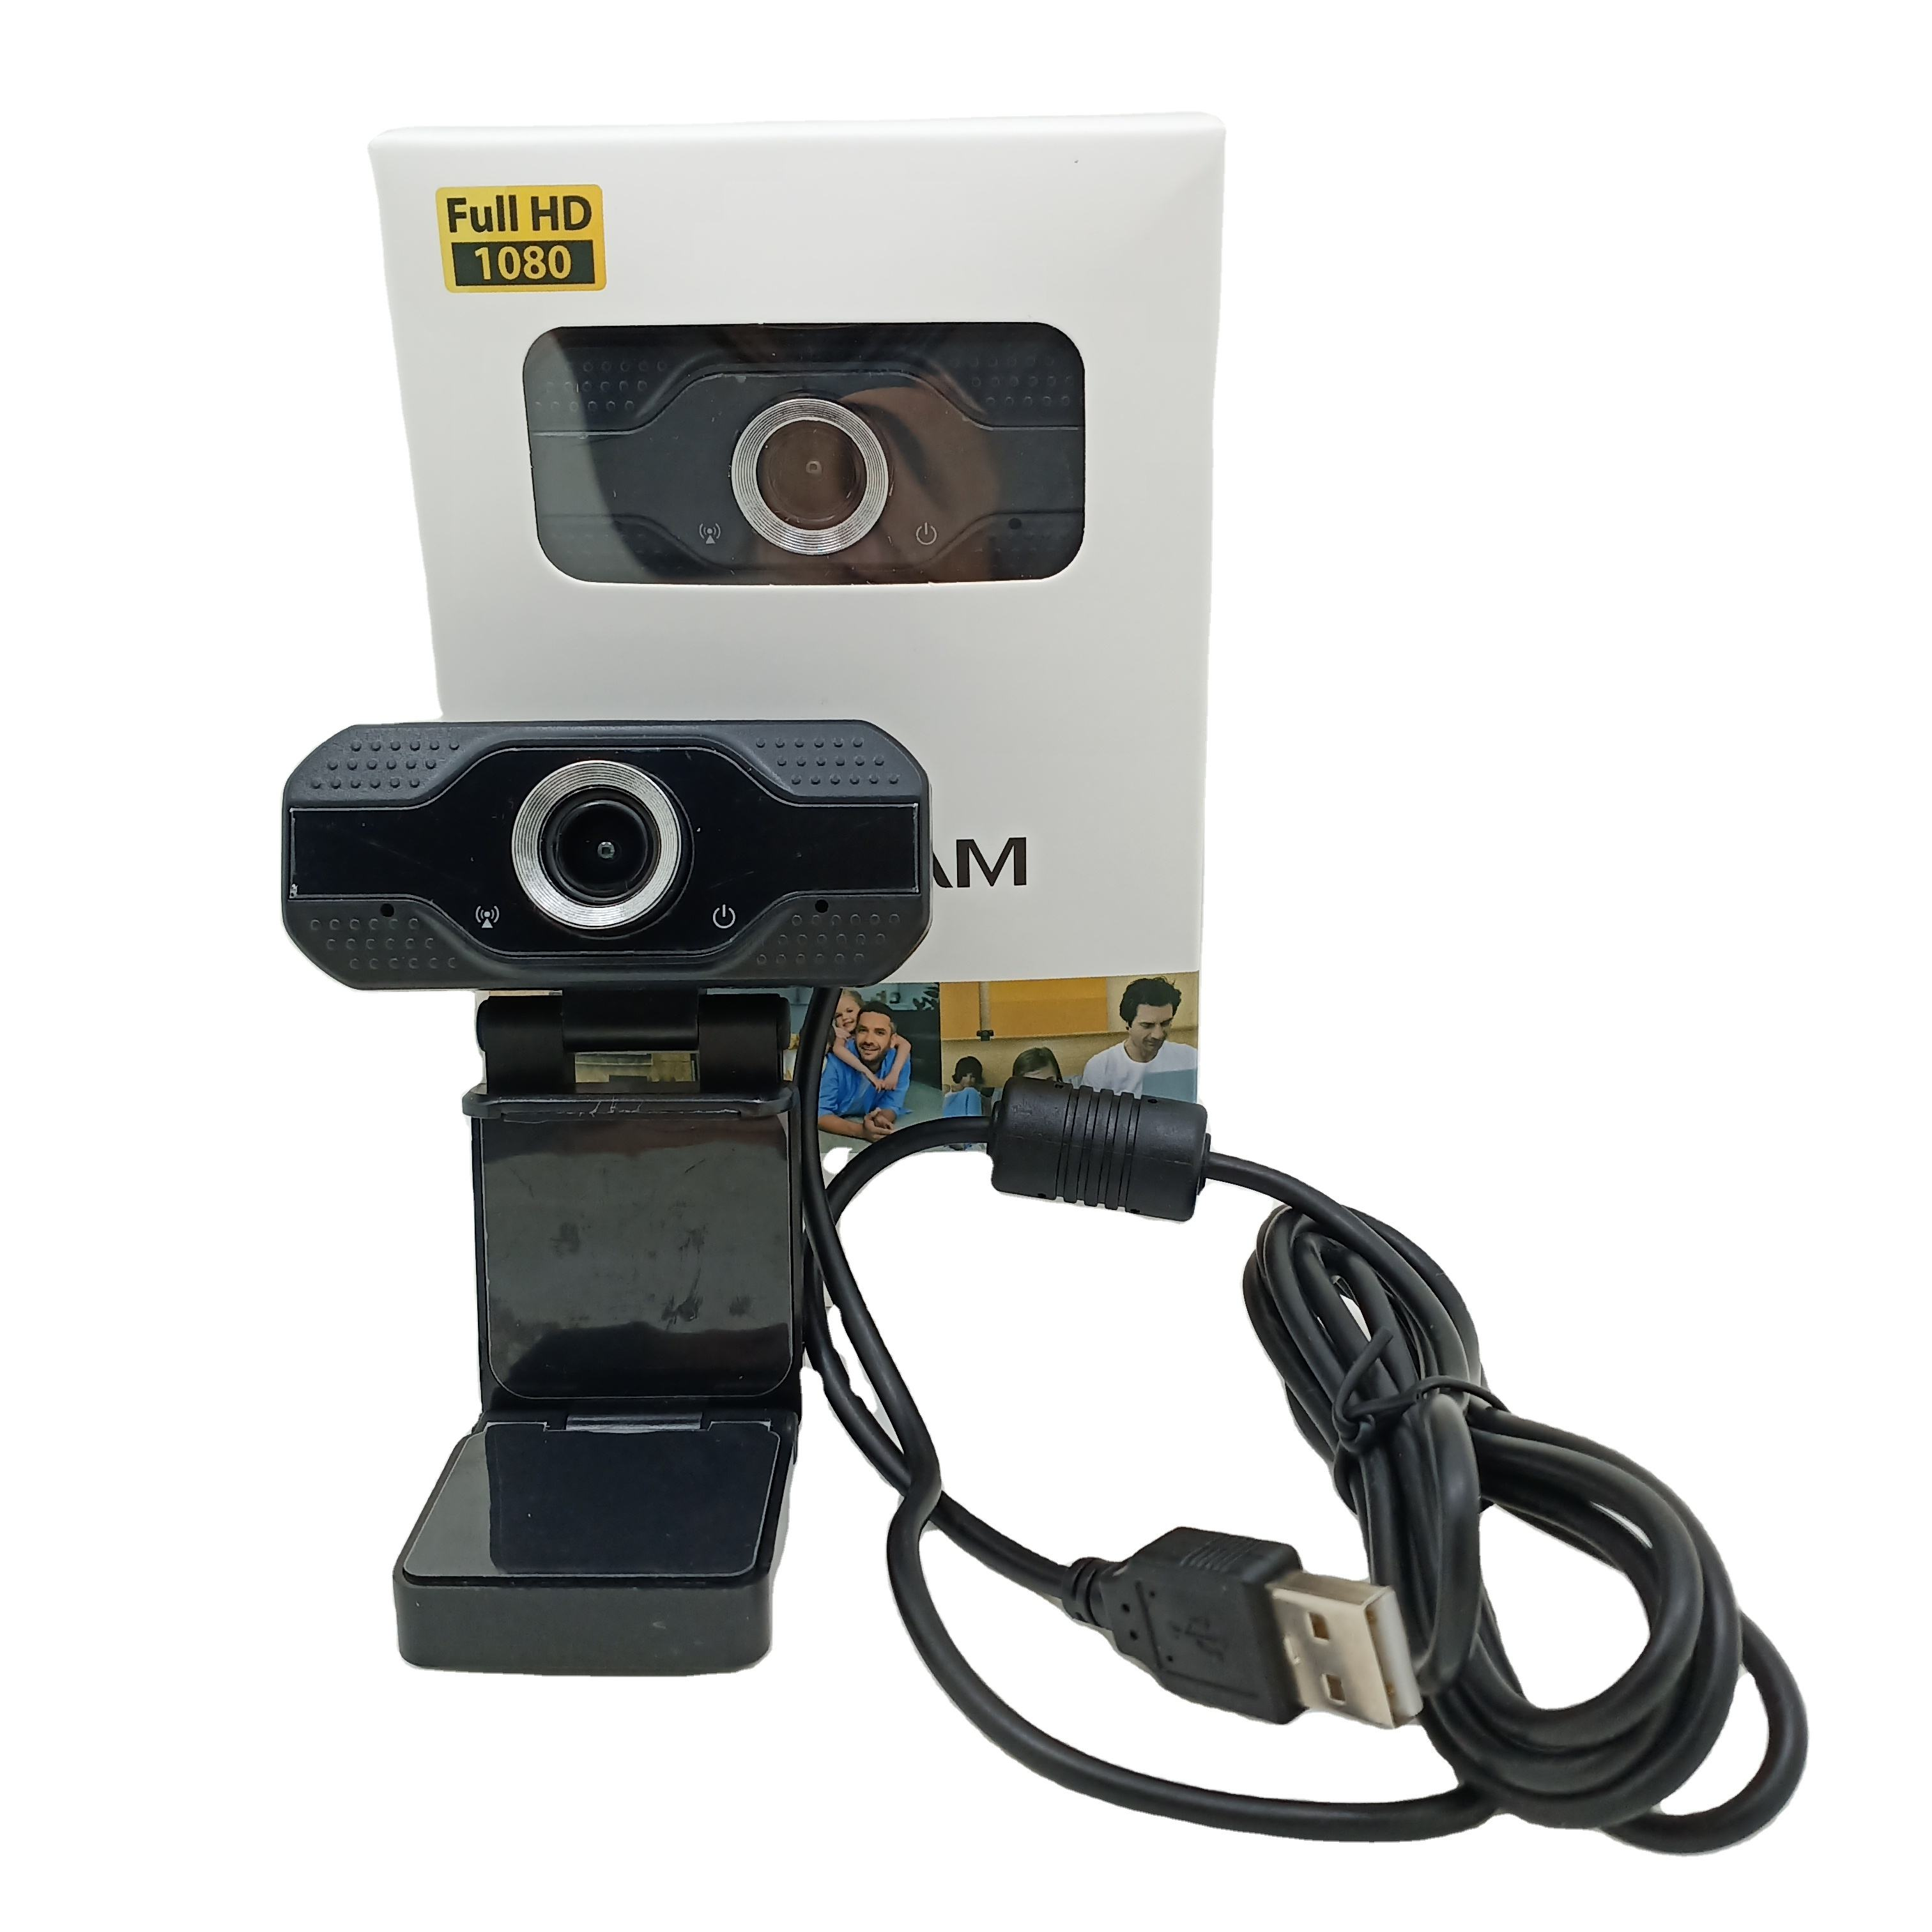 Computer Office Webcam USB 2.0 2 Megapixel High Definition Camera Web Cam noise reduction MIC Clip-on For Skype notebook laptops